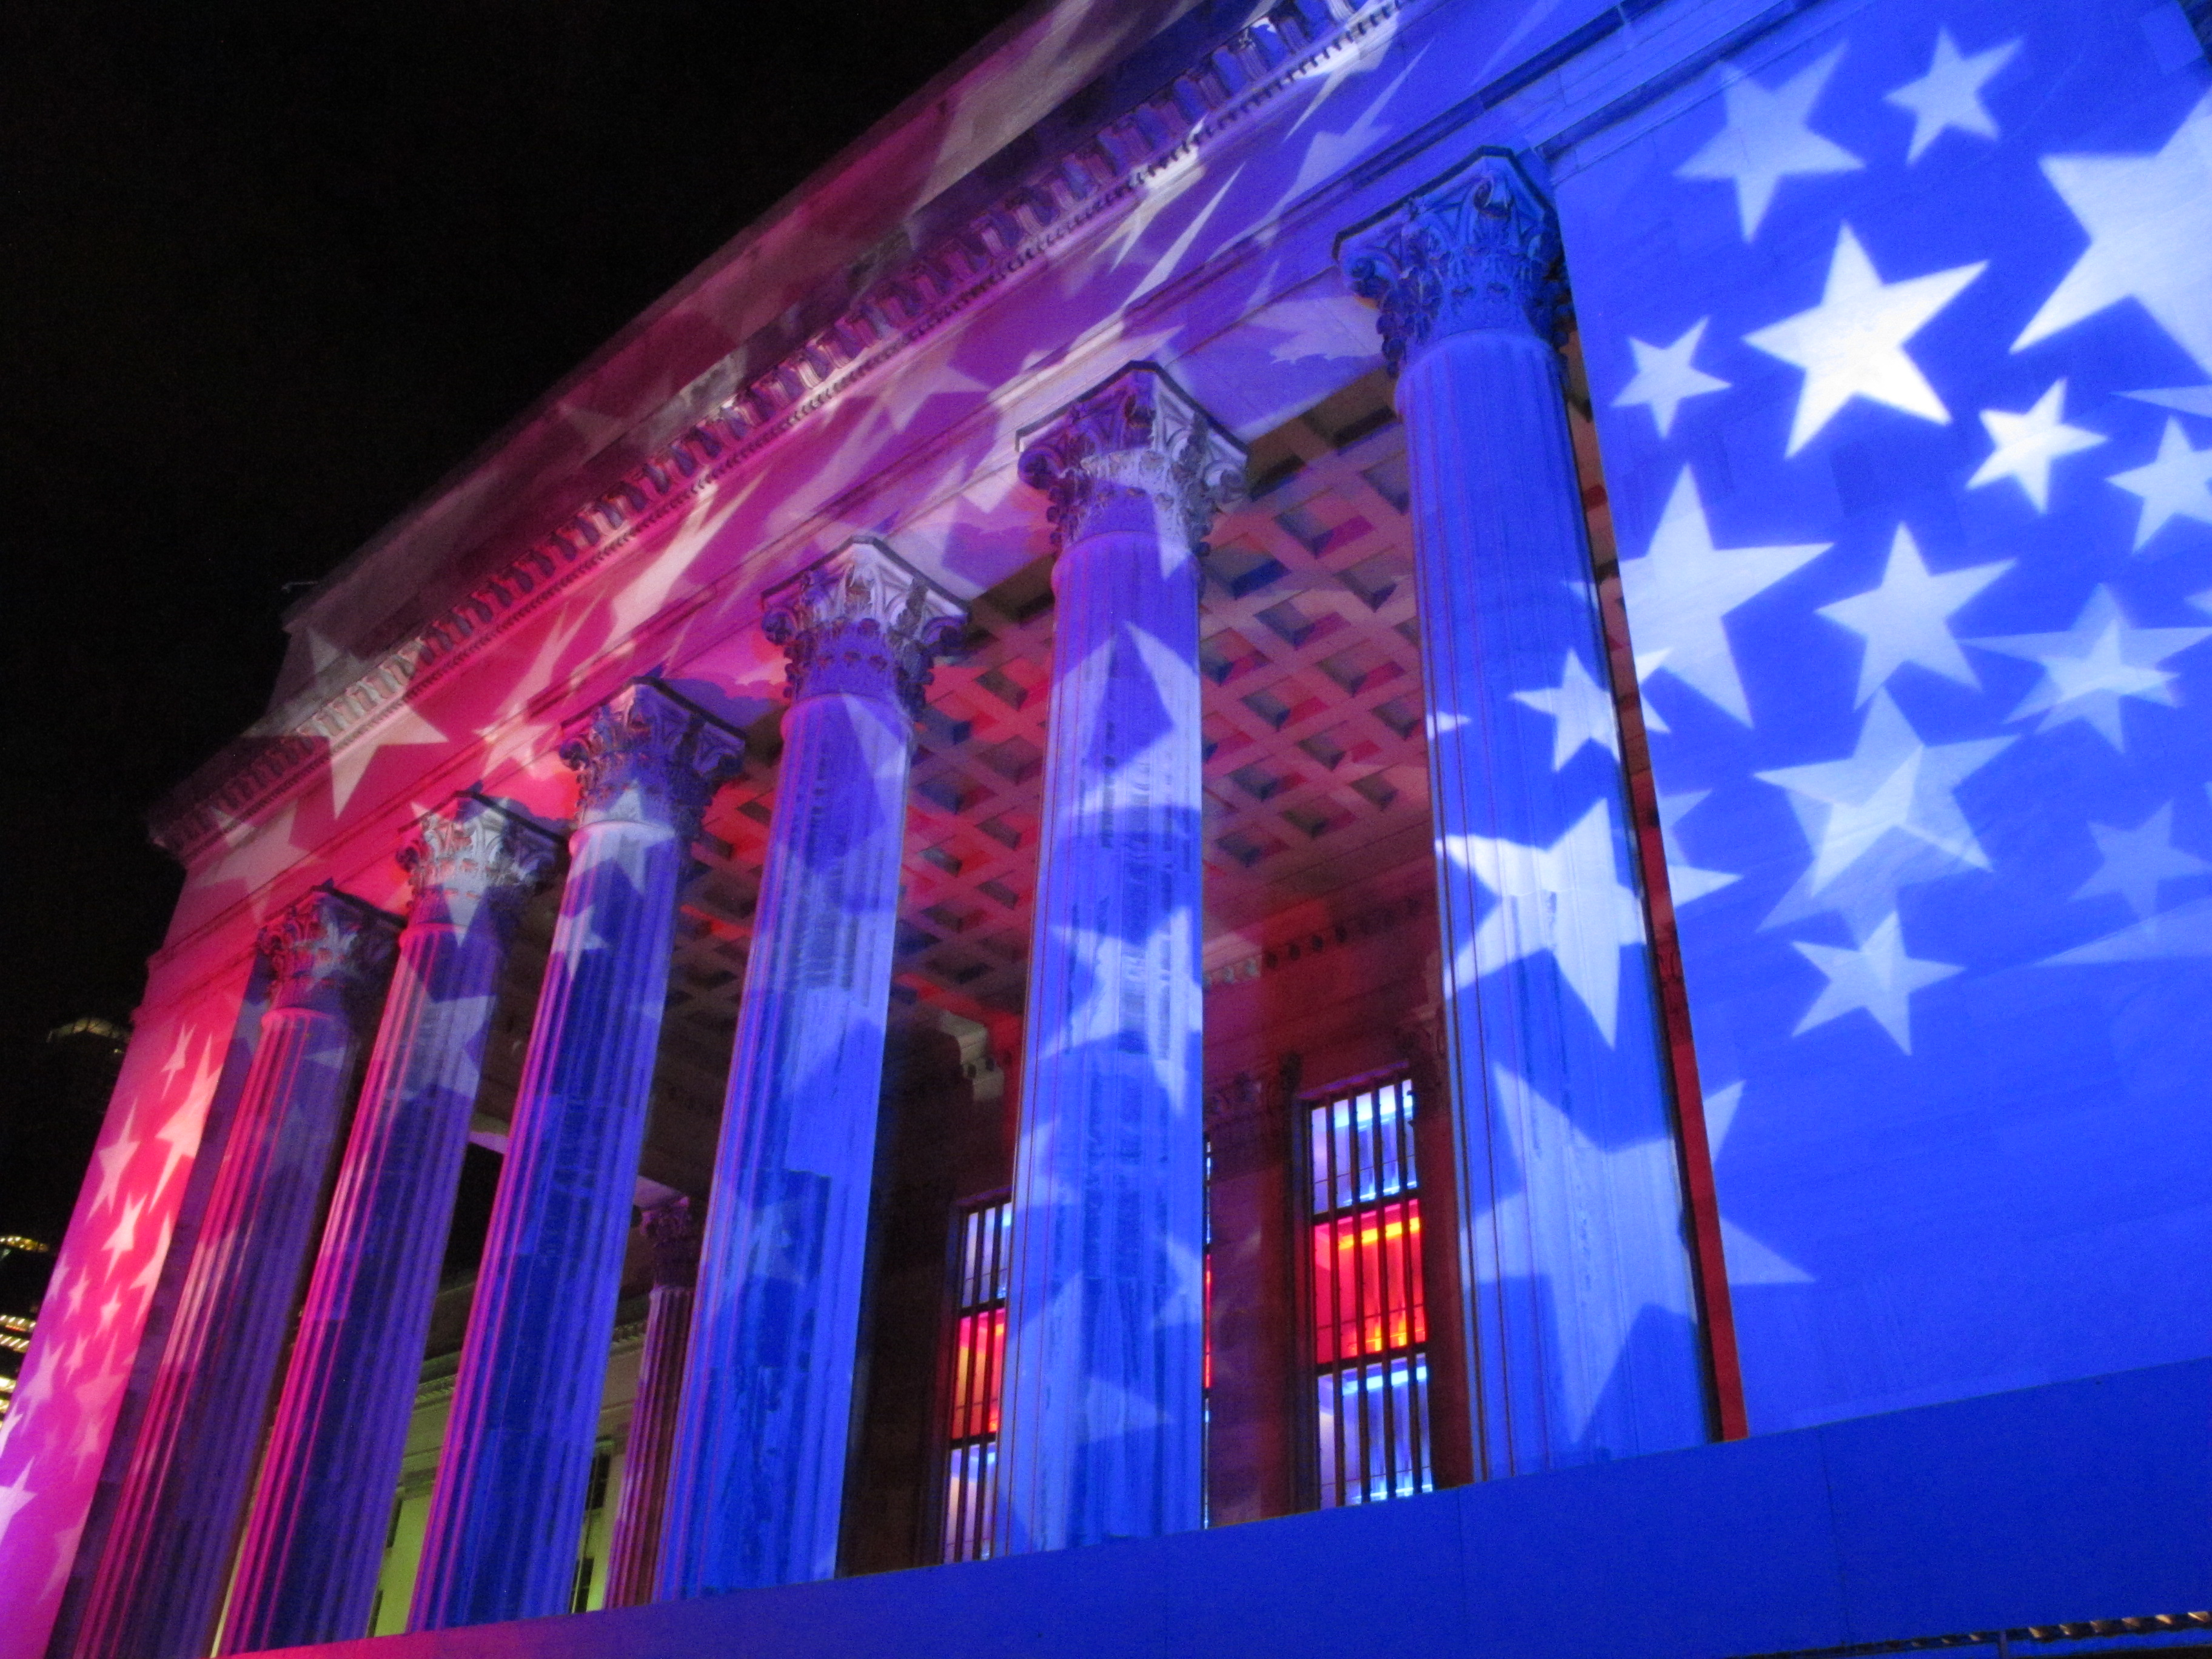 30th Street Station illuminated for DNC with LED